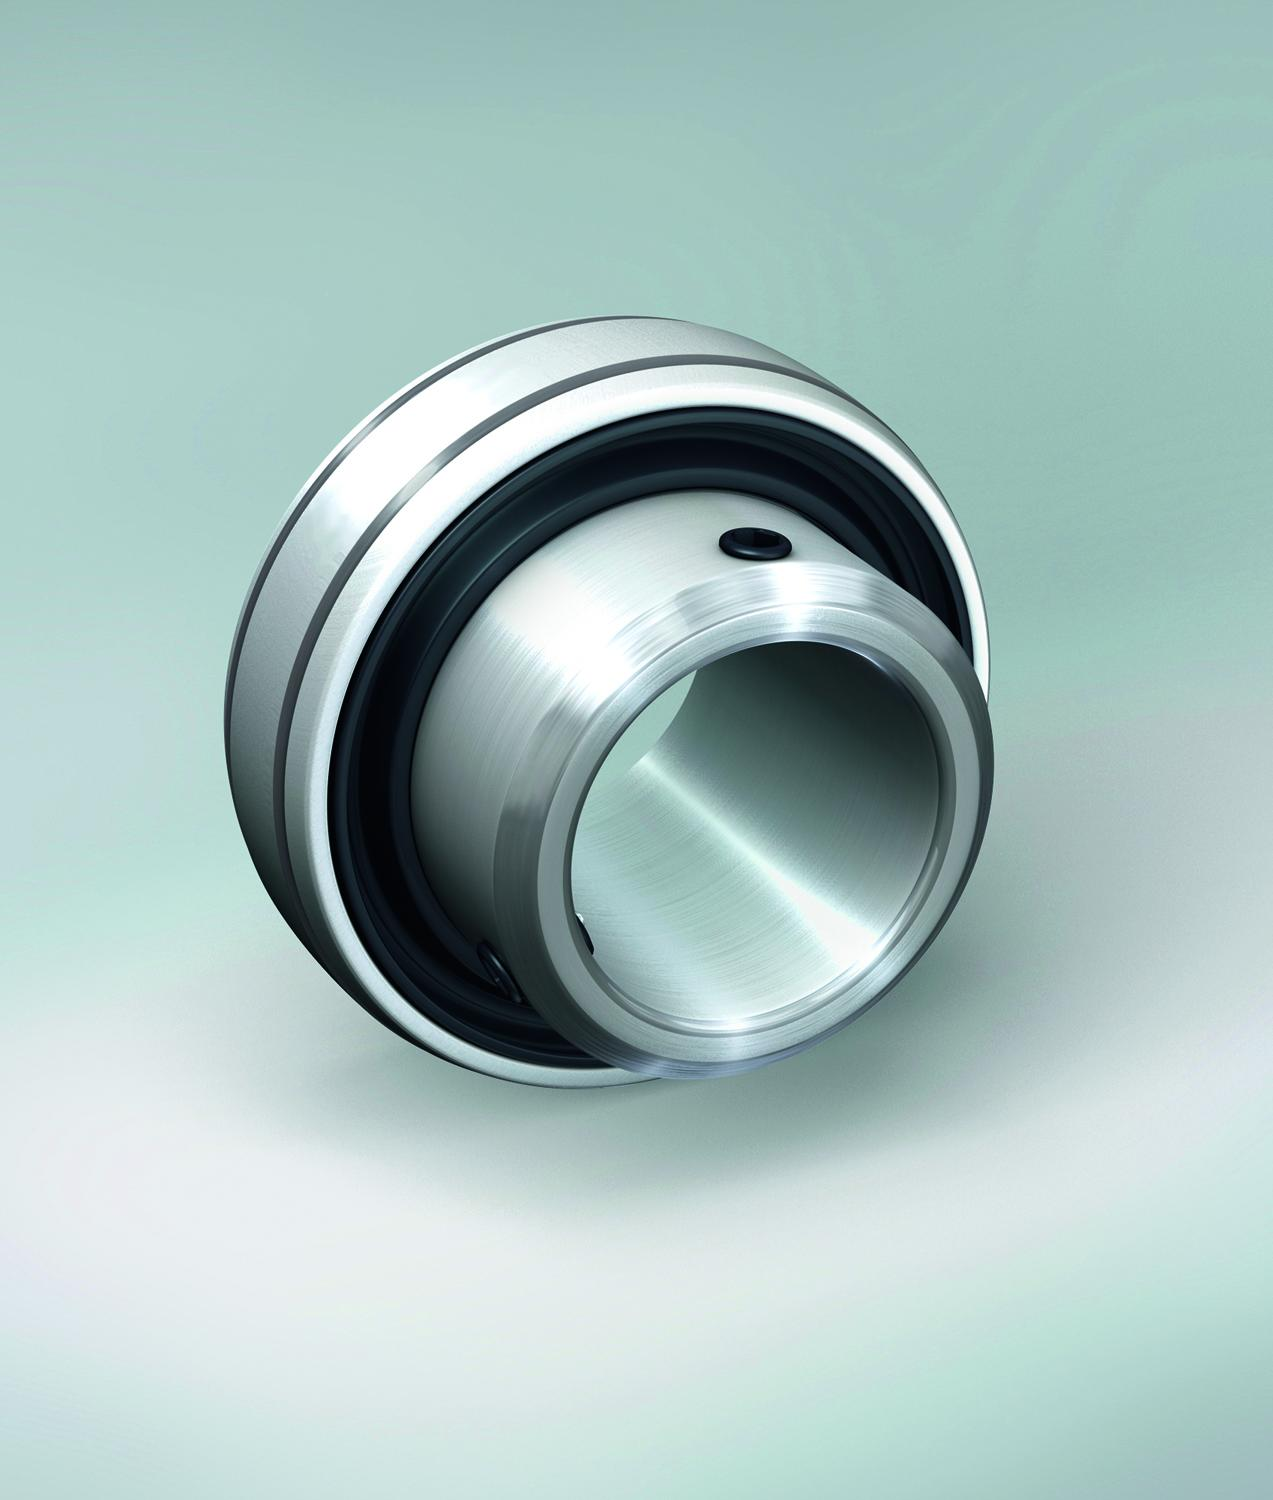 Frequent reliability problems were experienced with casting units assembled into a vibrating drum. NSK engineers proposed using Self-Lube Triple Lip Seals on the vibrating drum bearings